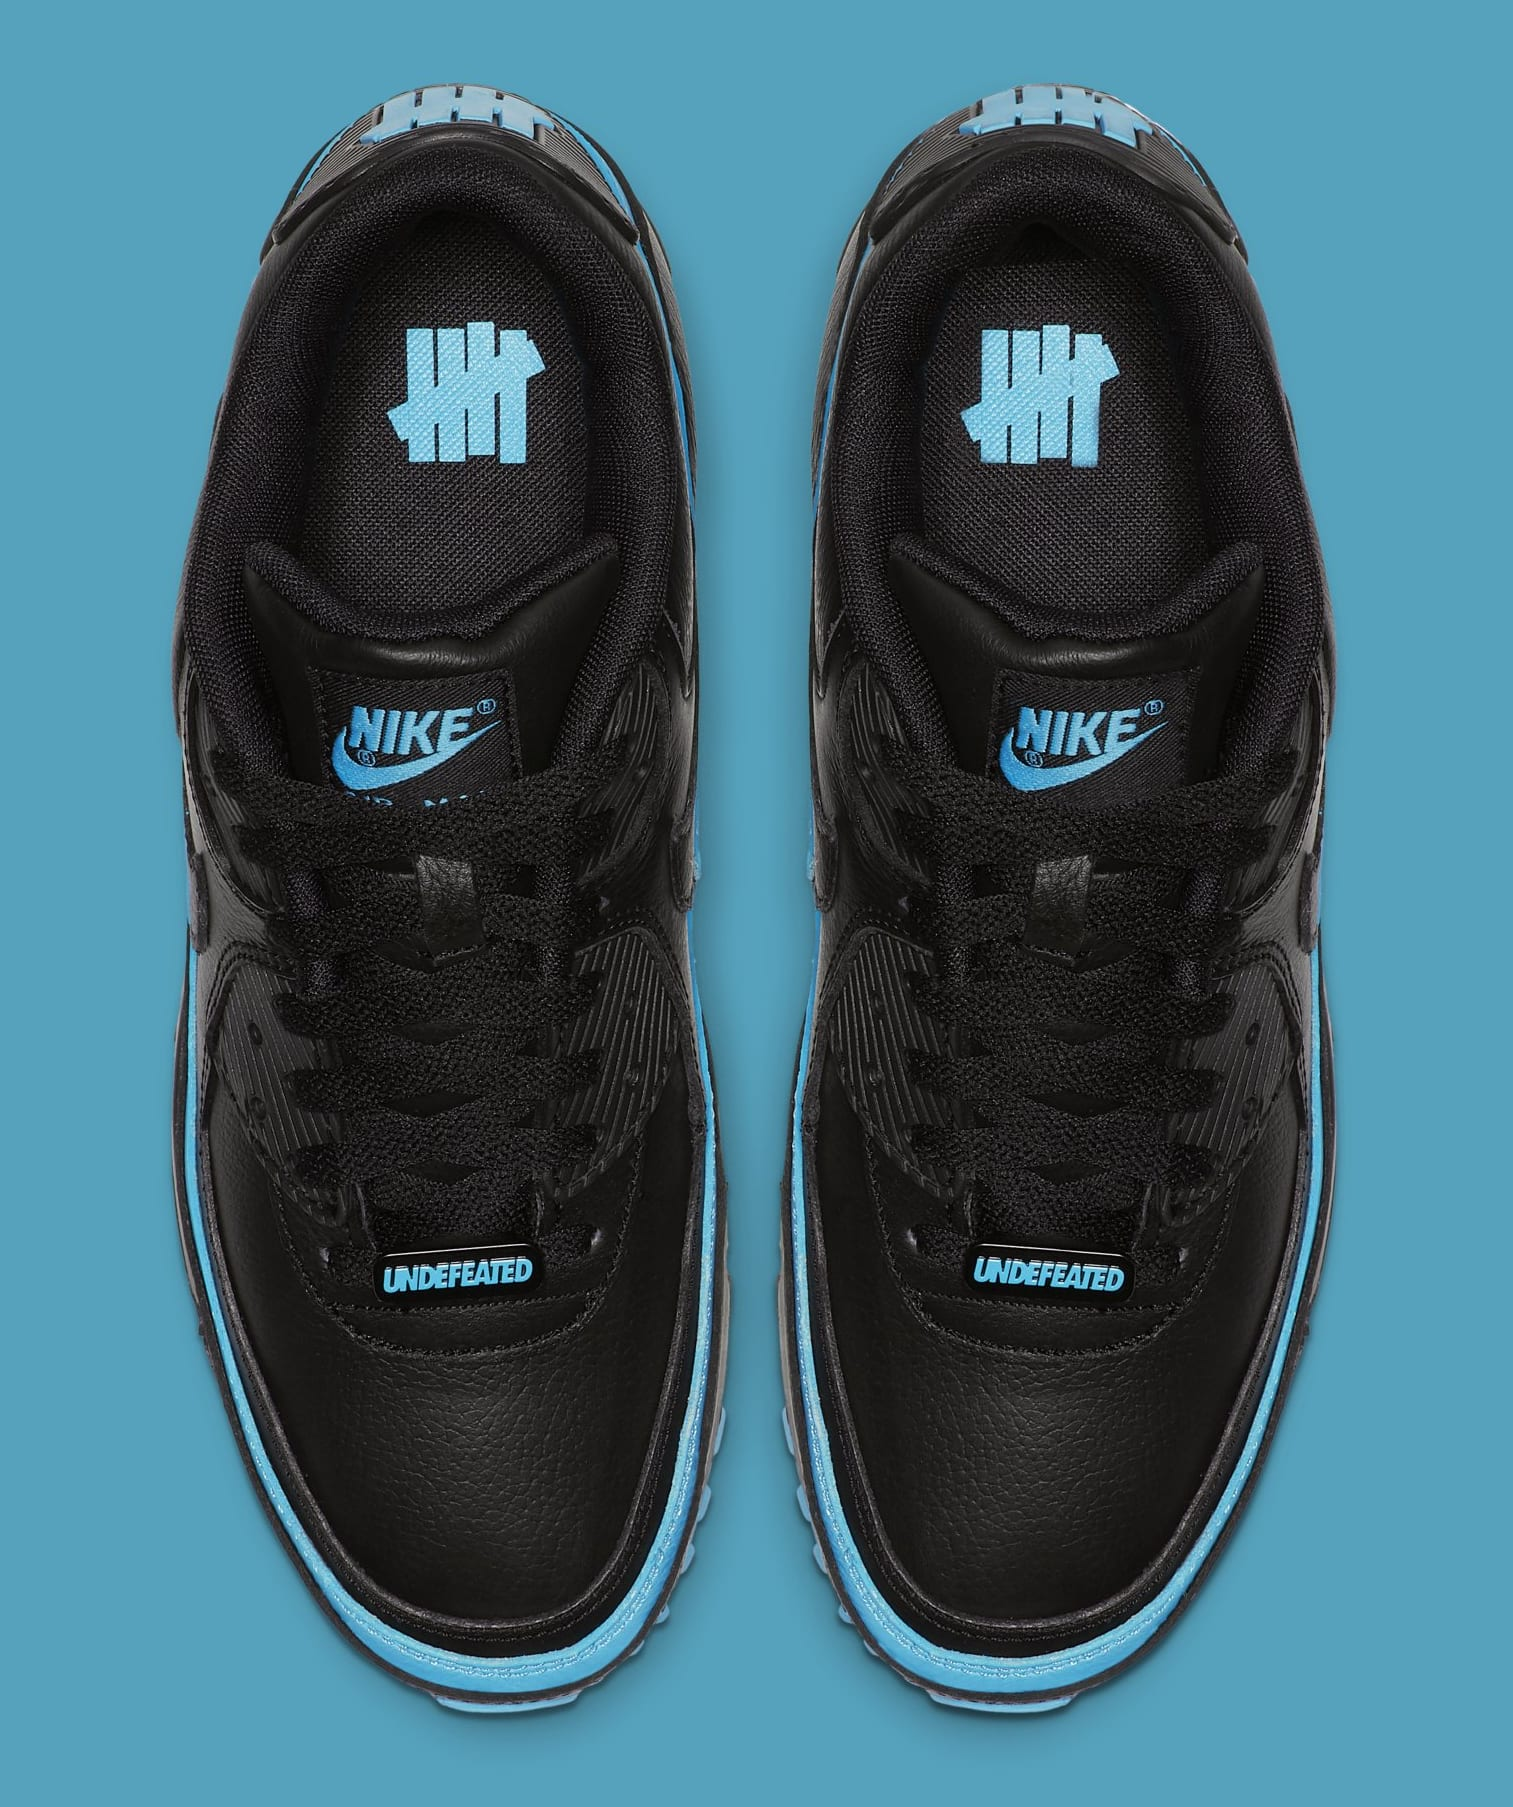 undefeated-nike-air-max-90-black-blue-fury-cj7197-002-top